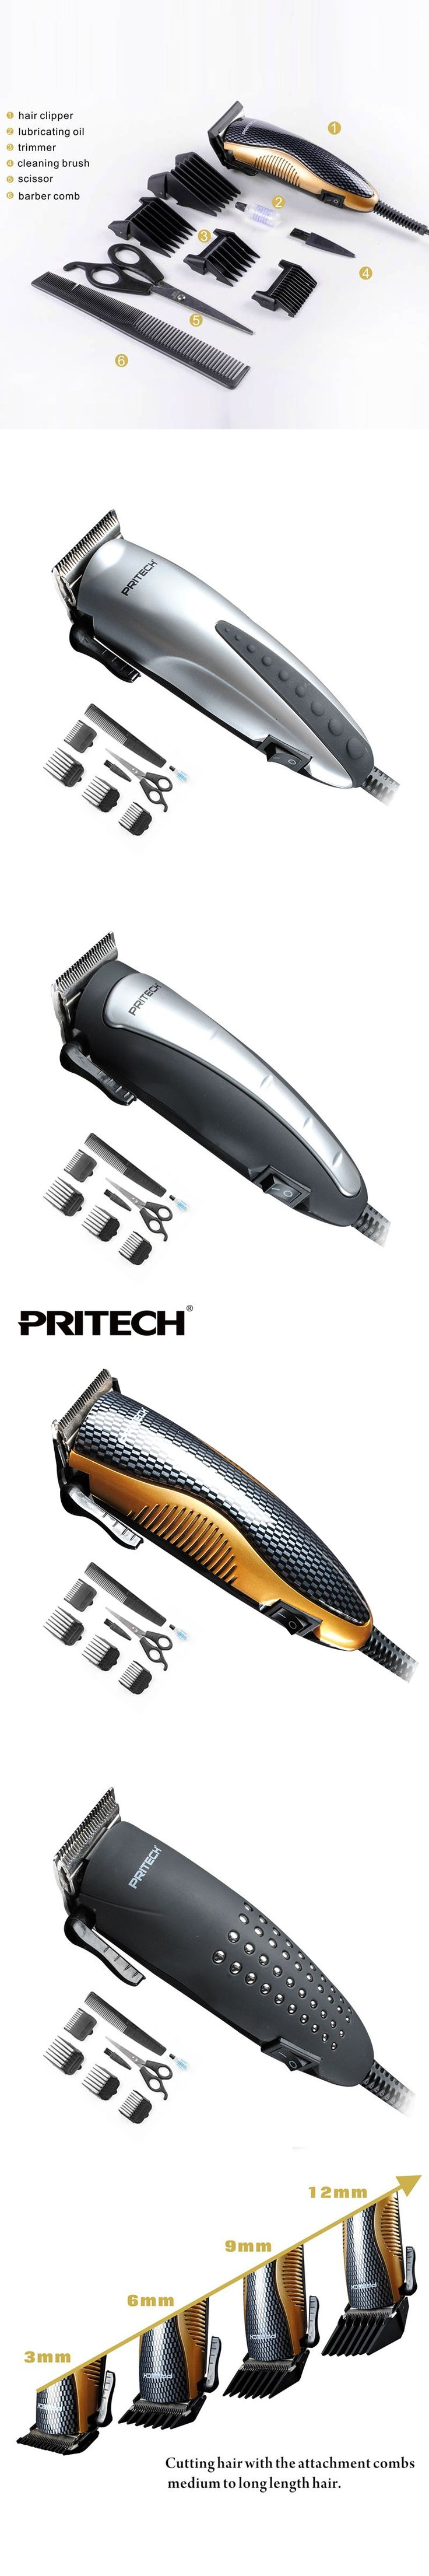 PRITECH  Professional Electric Hair Clipper Family Hair Trimmer Styling Tools For Barber Shop Salon Family Hair Cutting Machine